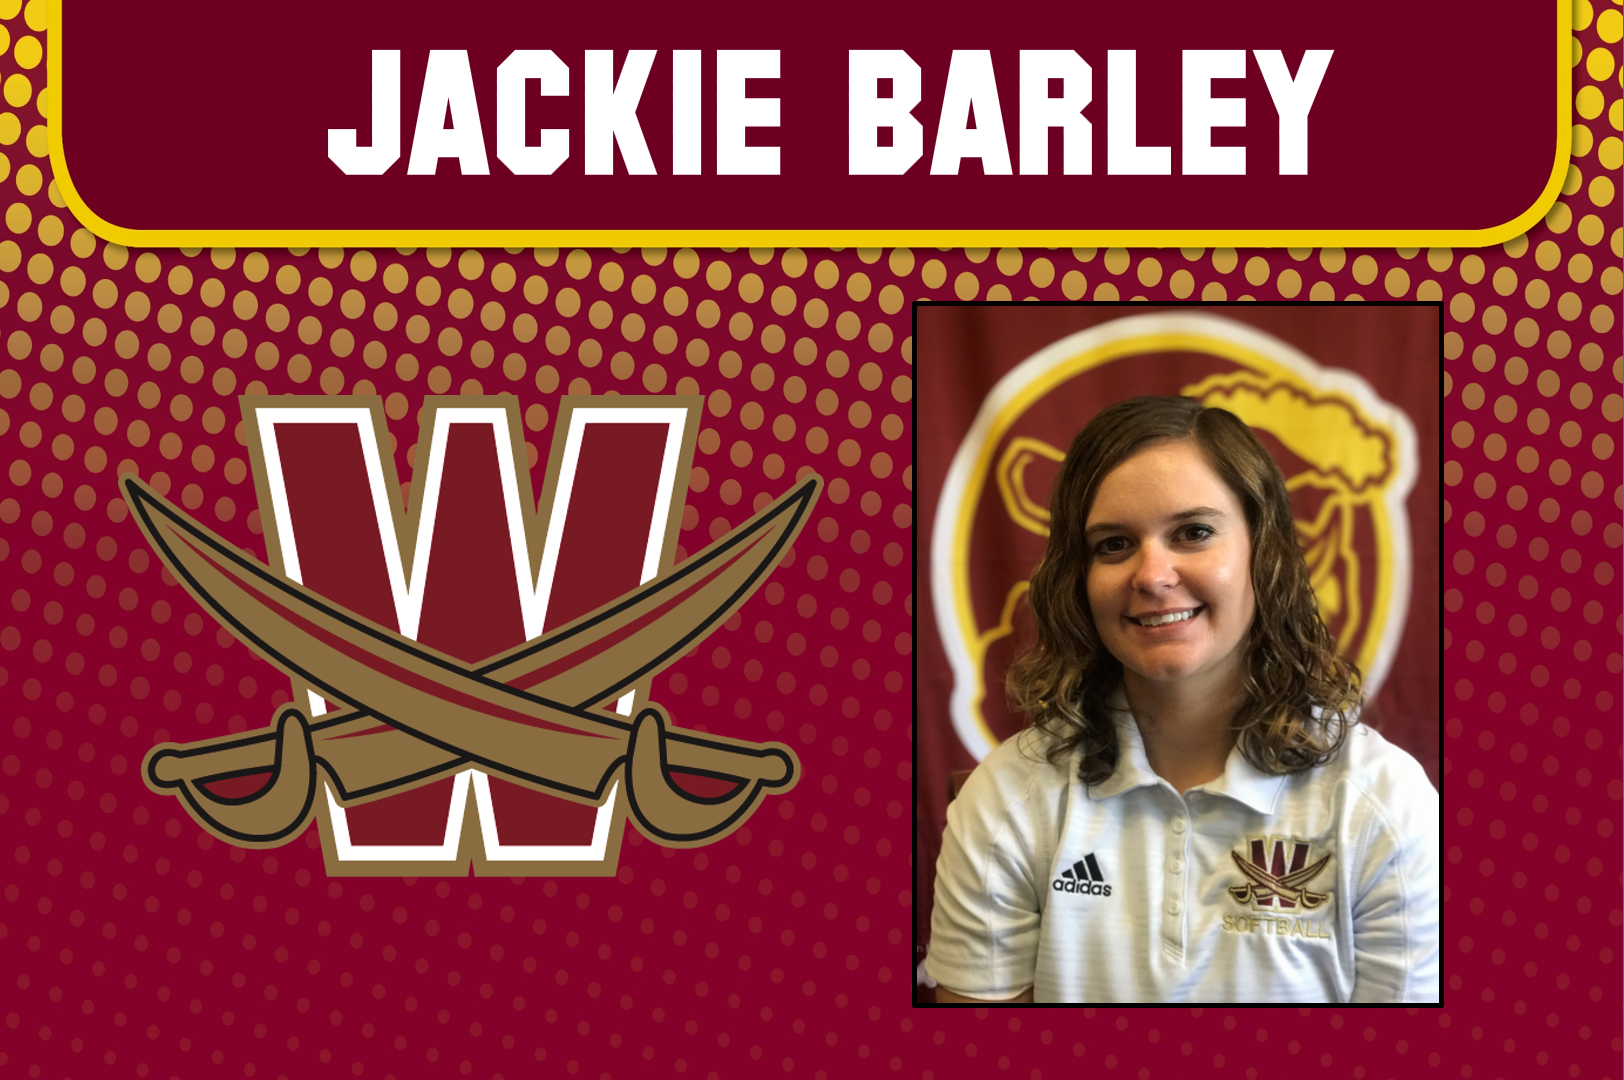 Cavs Hire Barley as Assistant Softball Coach